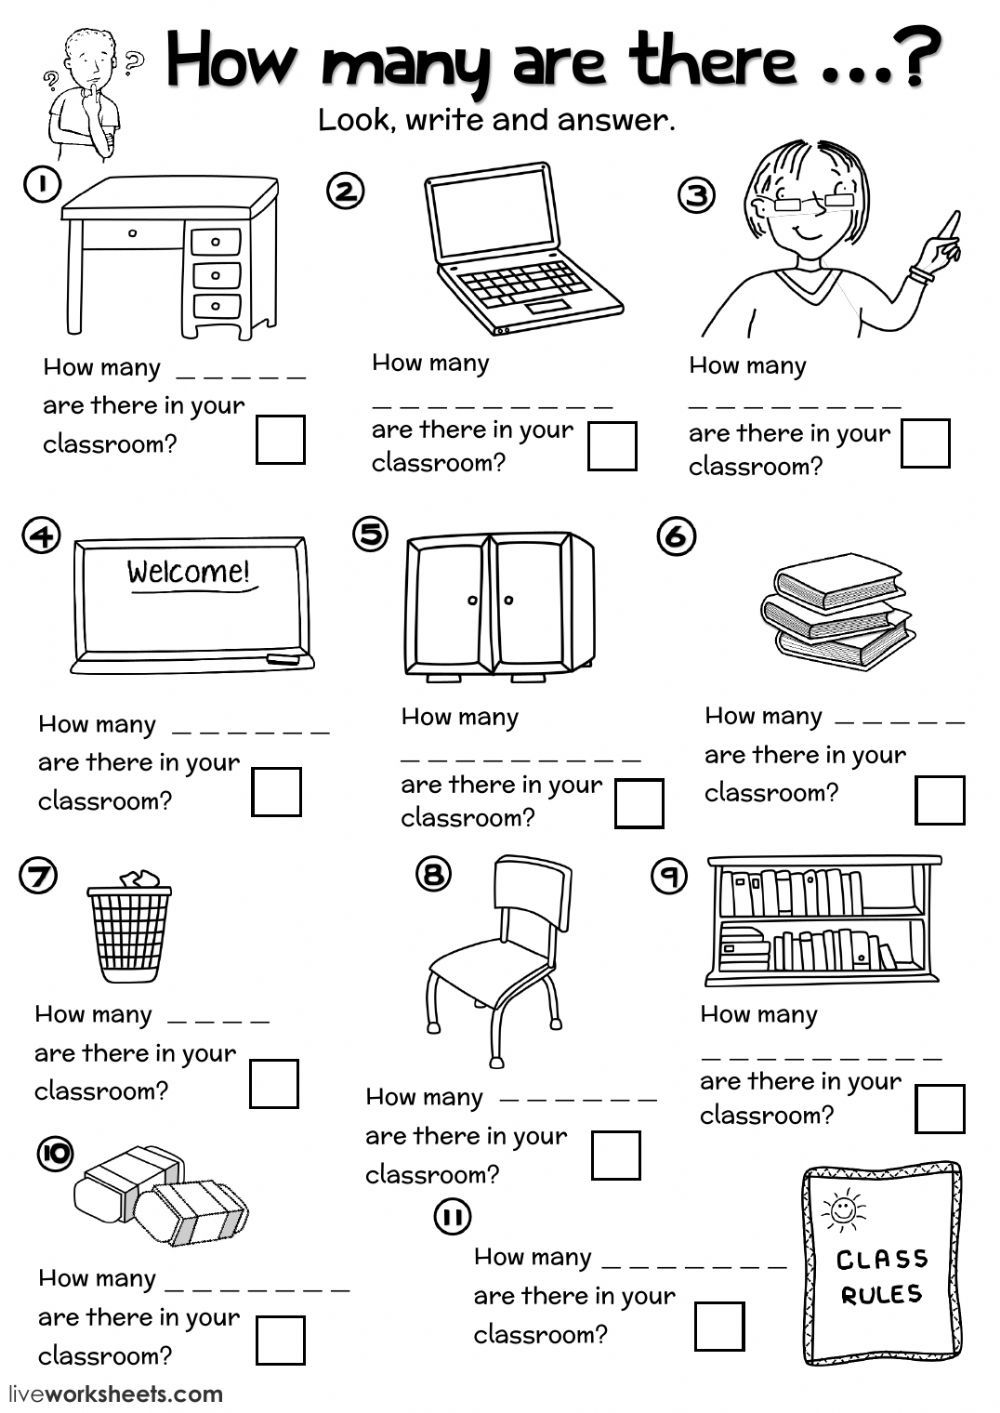 Wh Questions Interactive And Downloadable Worksheet You Can Do The Exercise English Conversation For Kids English Worksheets For Kids English Grammar For Kids [ 1413 x 1000 Pixel ]